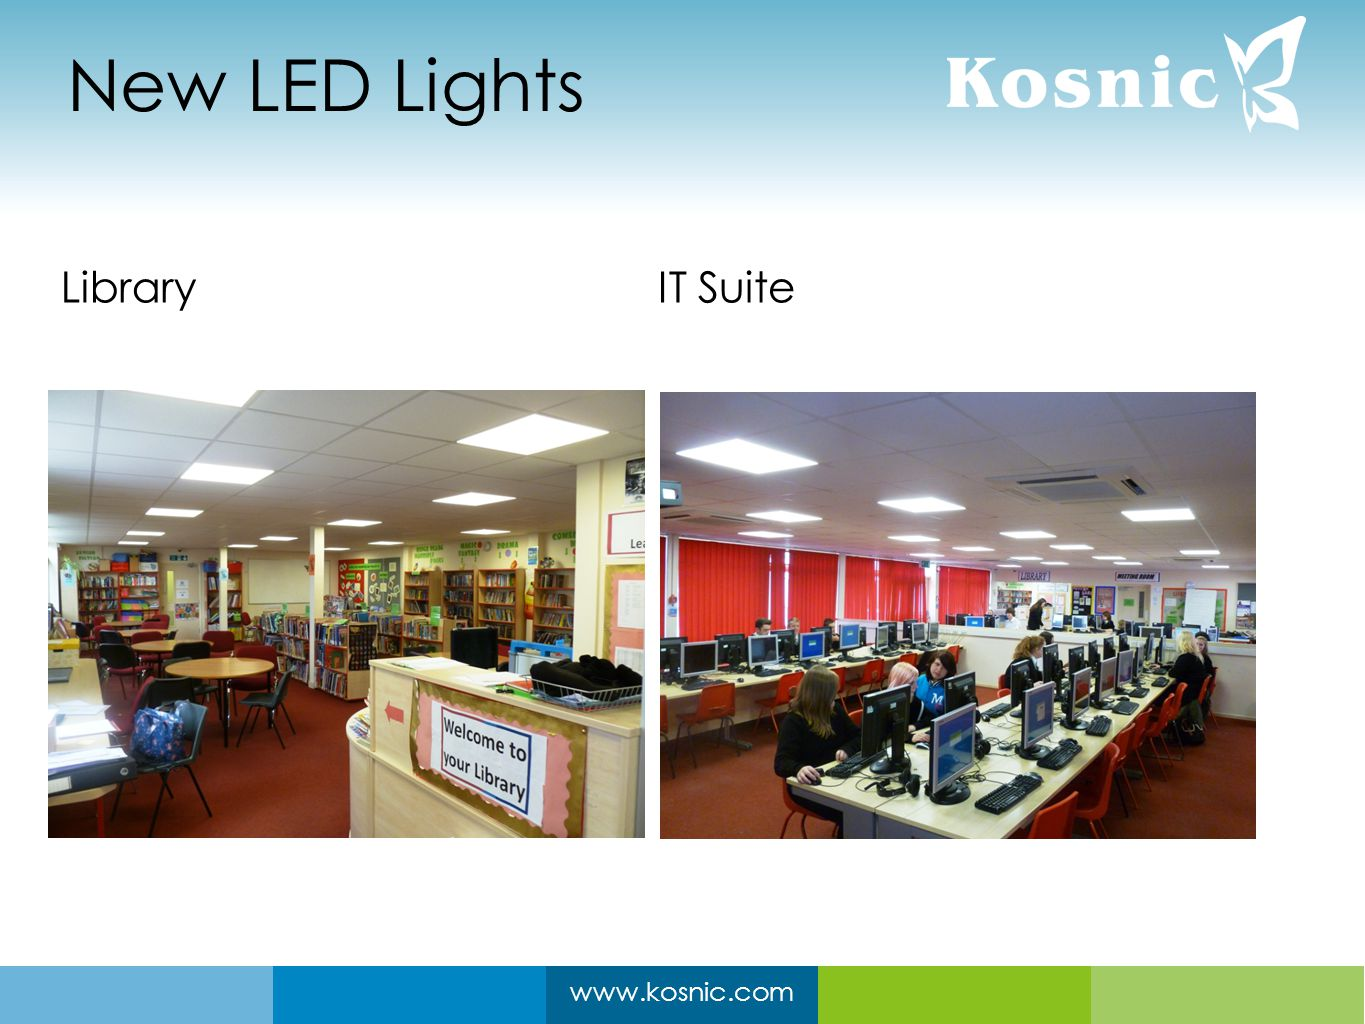 www.kosnic.com New LED Lights Library IT Suite